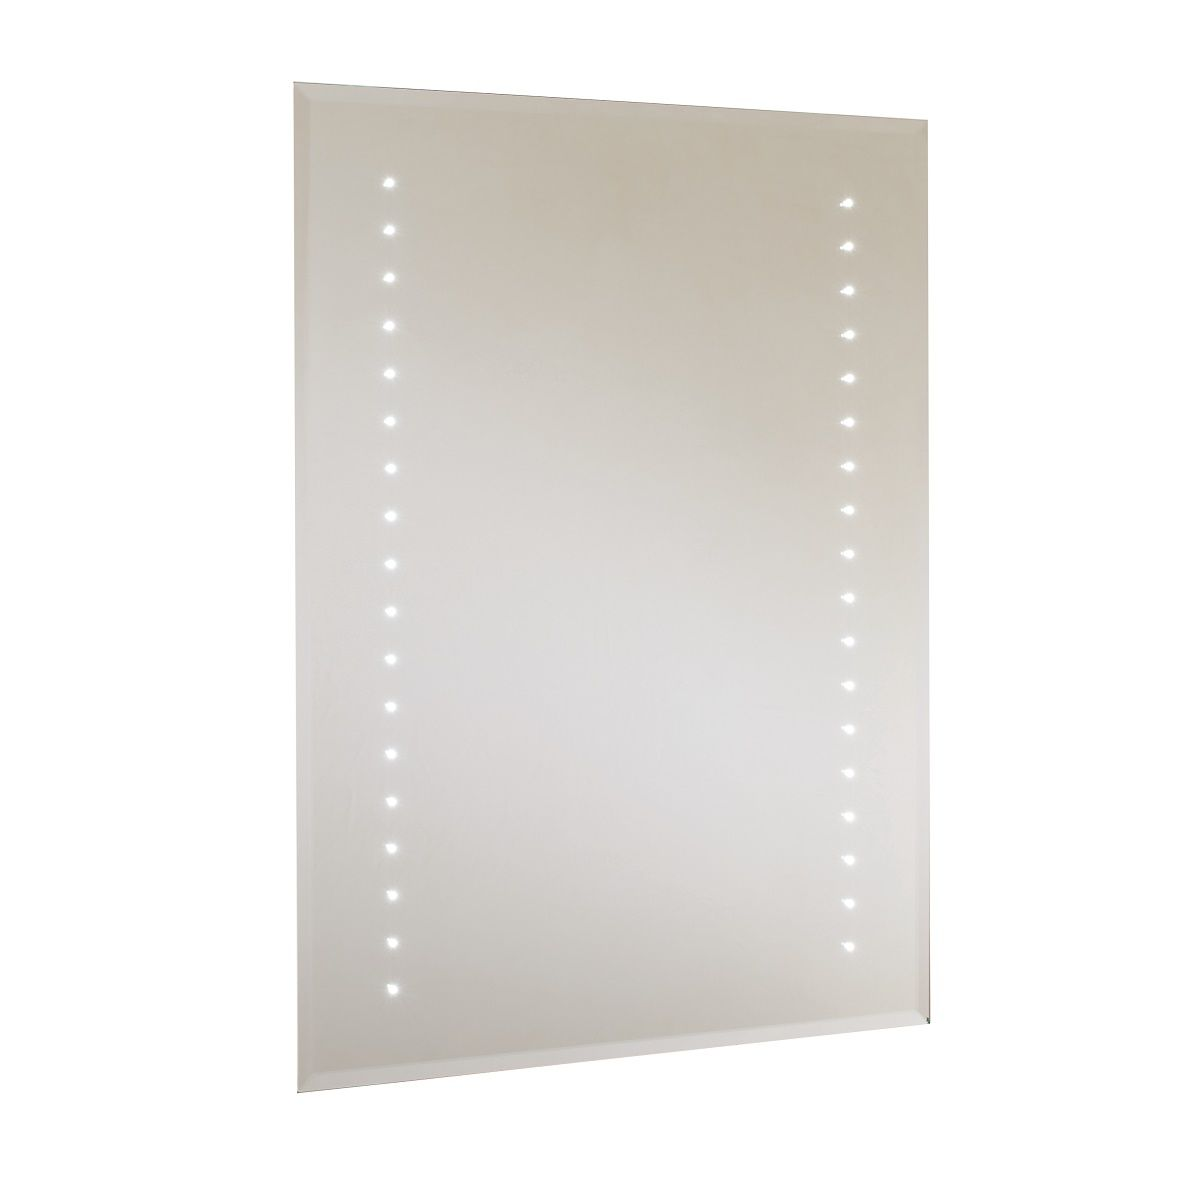 RAK Rubens Illuminated LED Bevel Edged Mirror 800 x 600mm